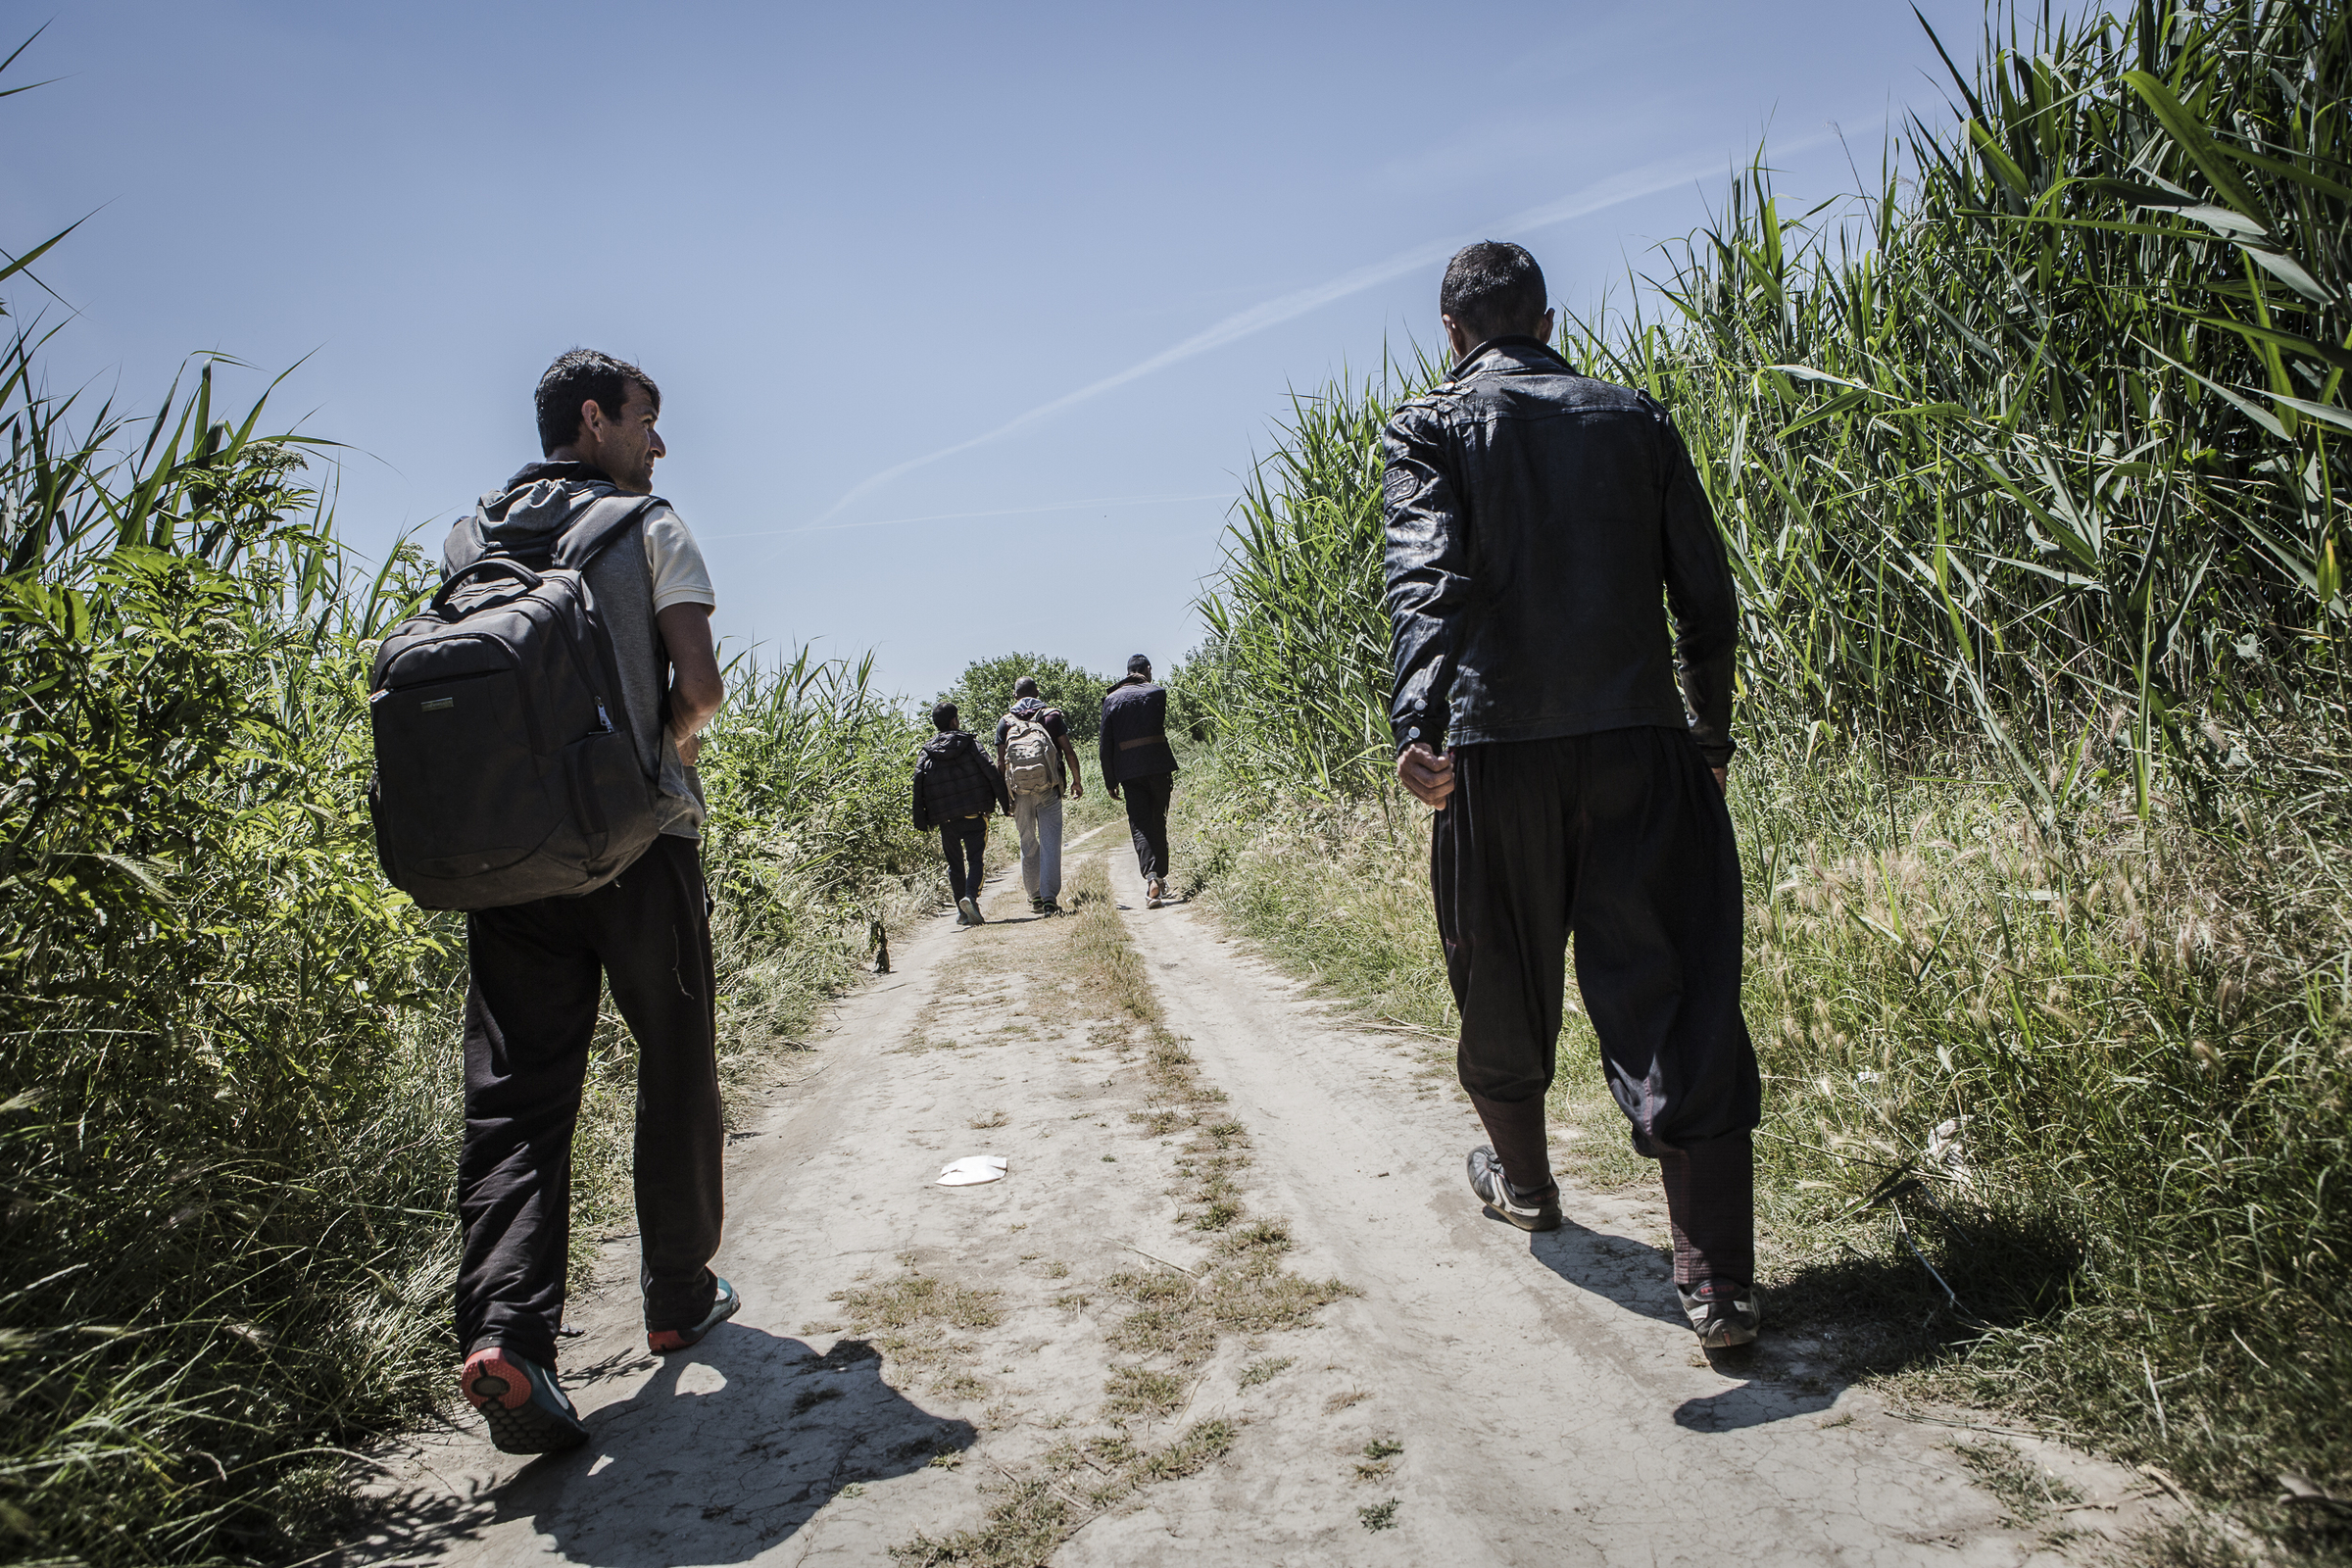 Afghan refugees walk through the no-man's-land between the Greek and Macedonian borders.